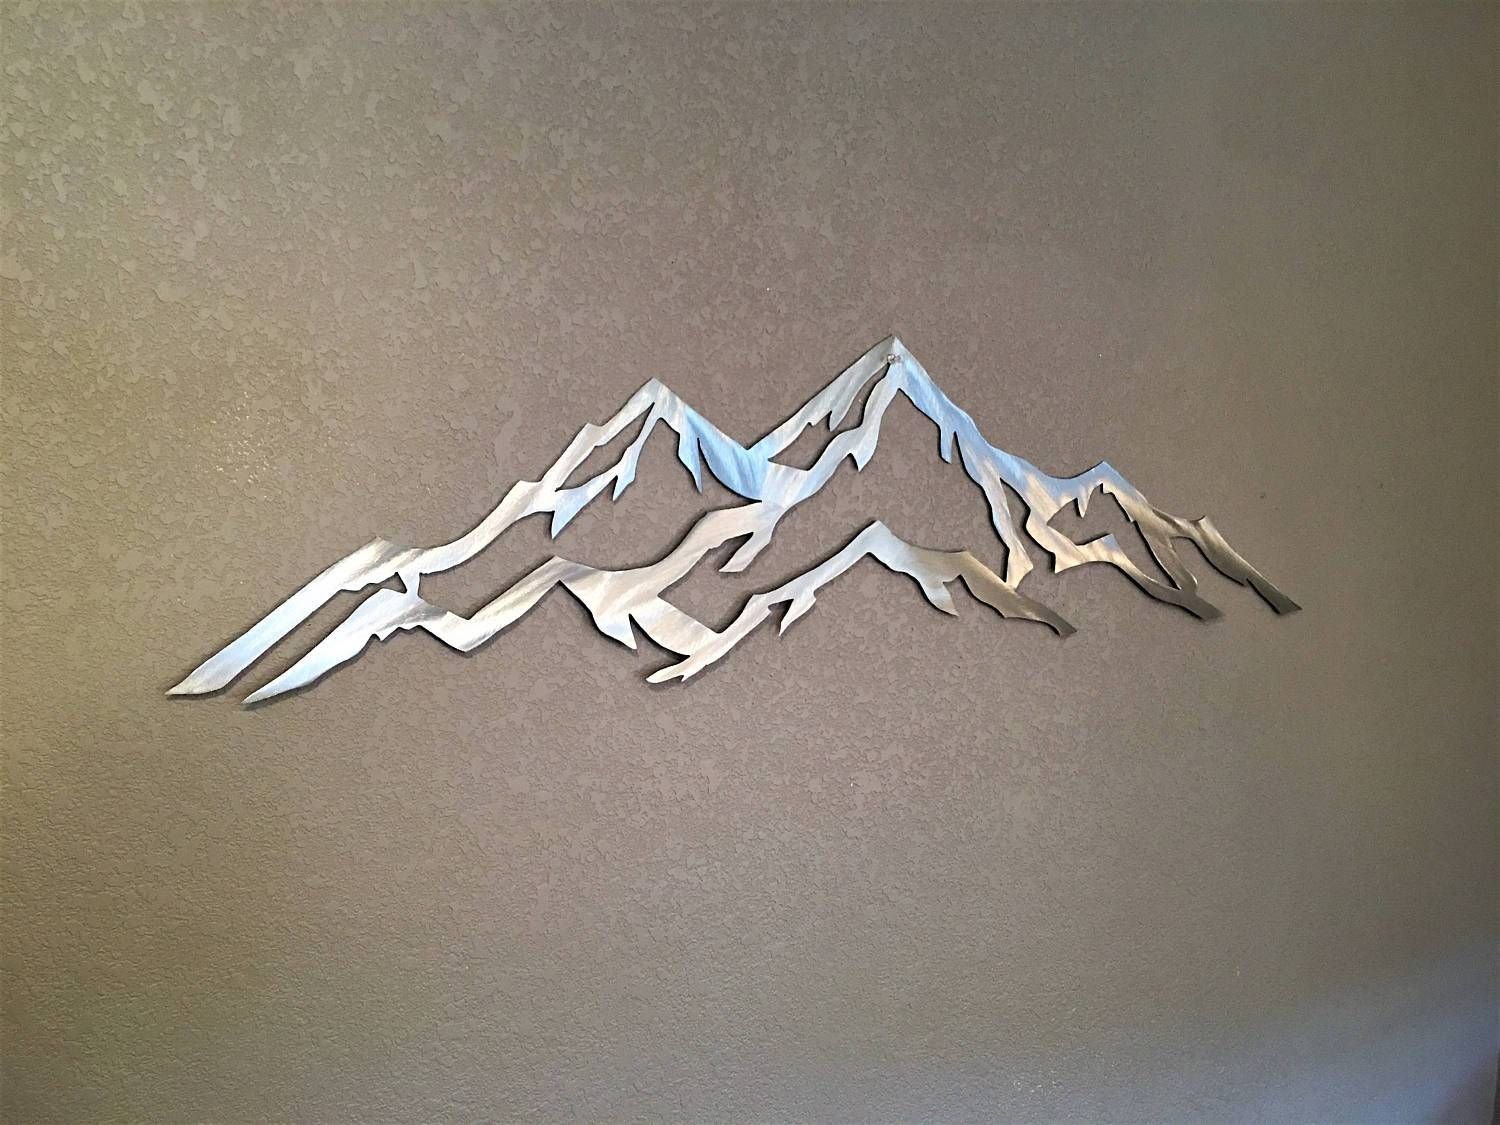 4 Foot Aspen Ski Resorts. Metal Wall Art Mountains. Aspen Mountain Pertaining To Newest Mountains Metal Wall Art (Gallery 10 of 20)